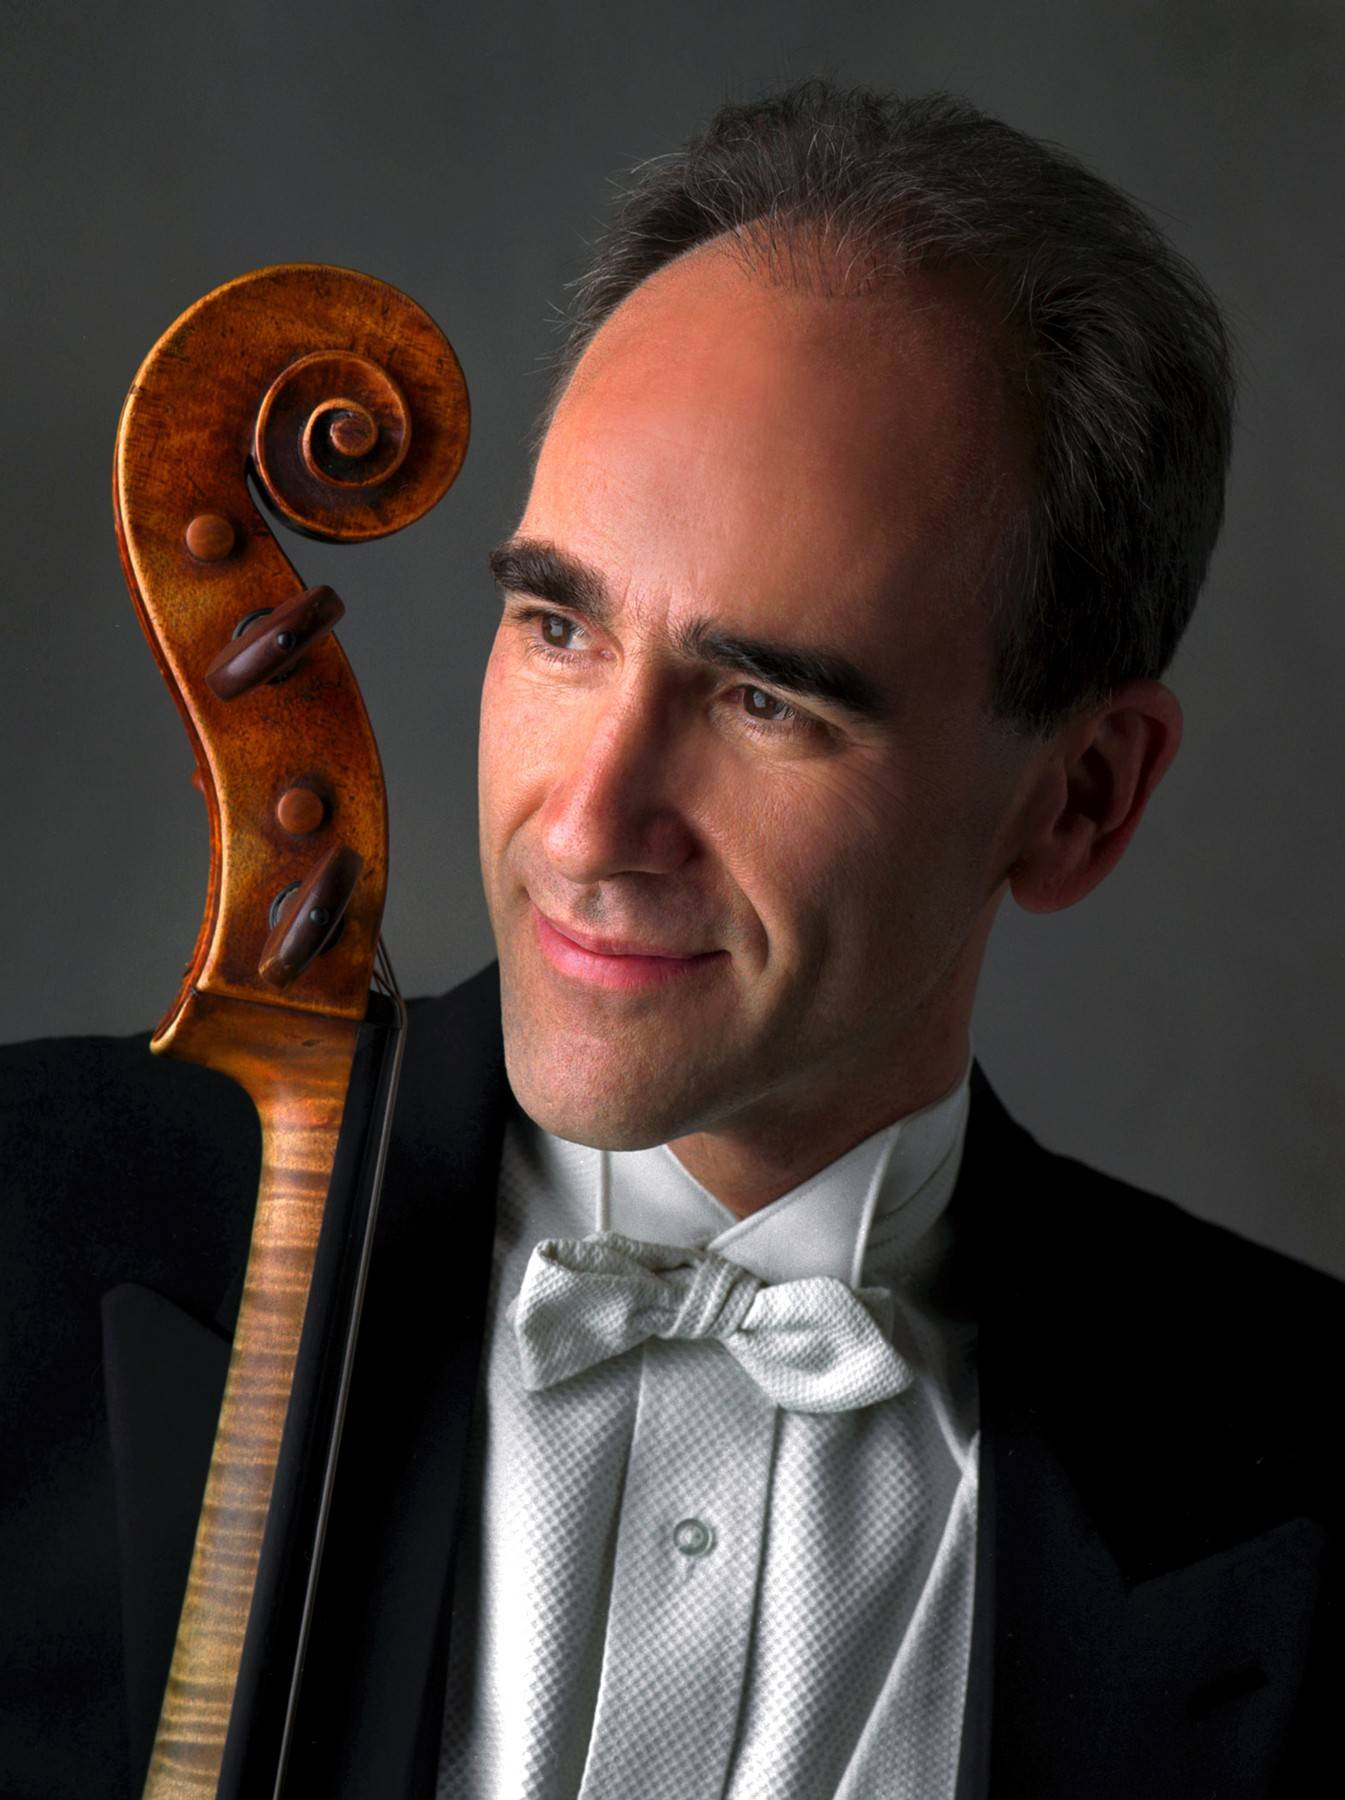 Cellist Carter Brey performs with the Elgin Symphony Orchestra in Schaumburg and Elgin.